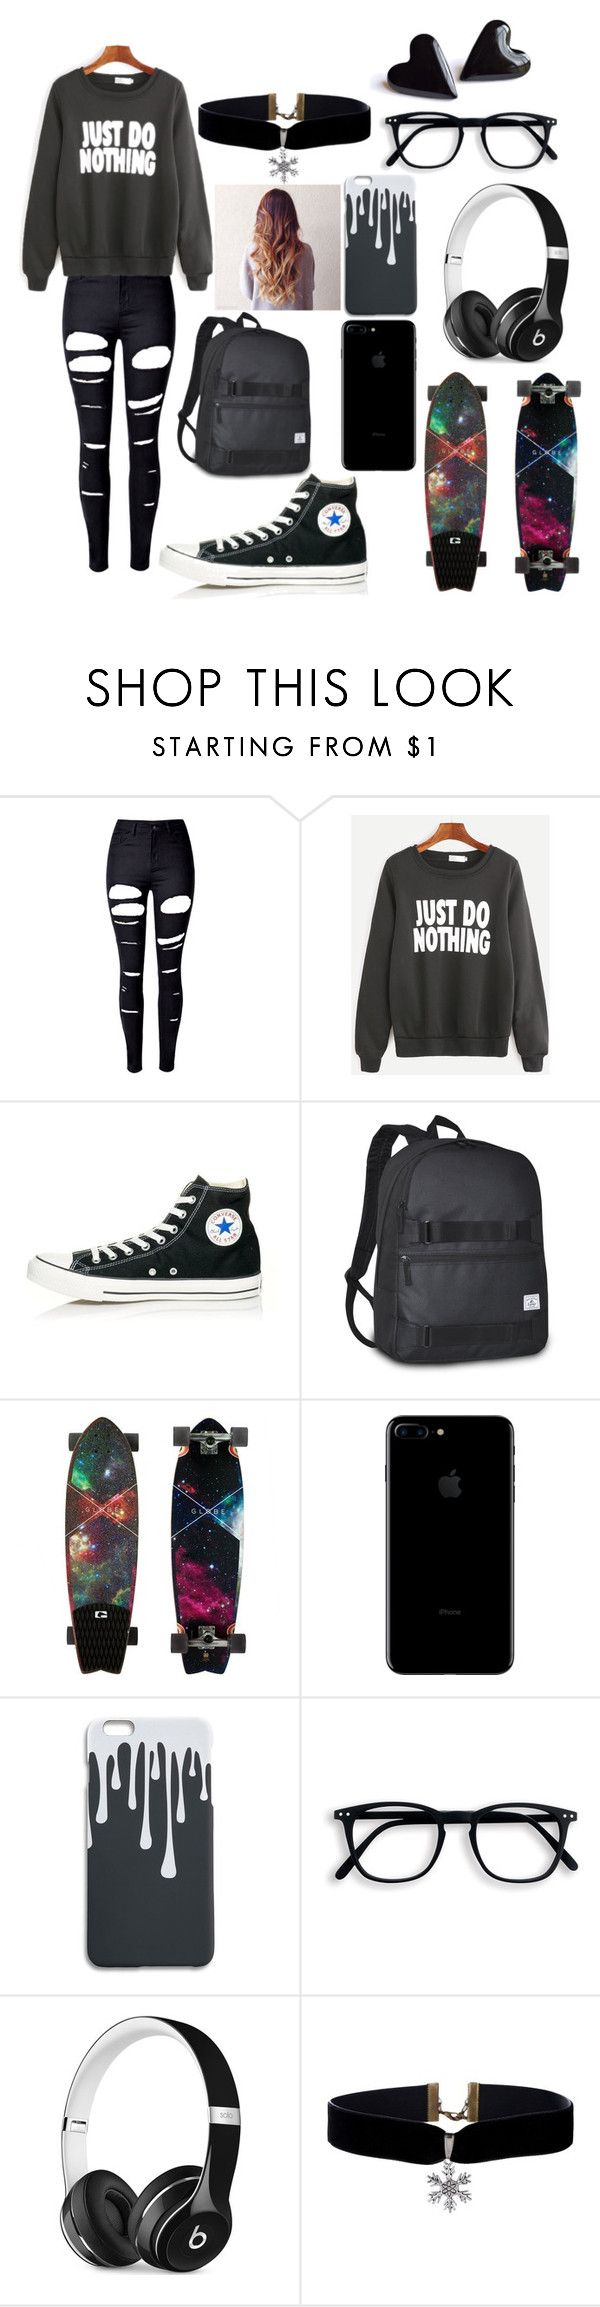 """""""Skater Girl Look"""" by nadia-y03 ❤ liked on Polyvore featuring WithChic, Converse, Everest and Beats by Dr. Dre"""